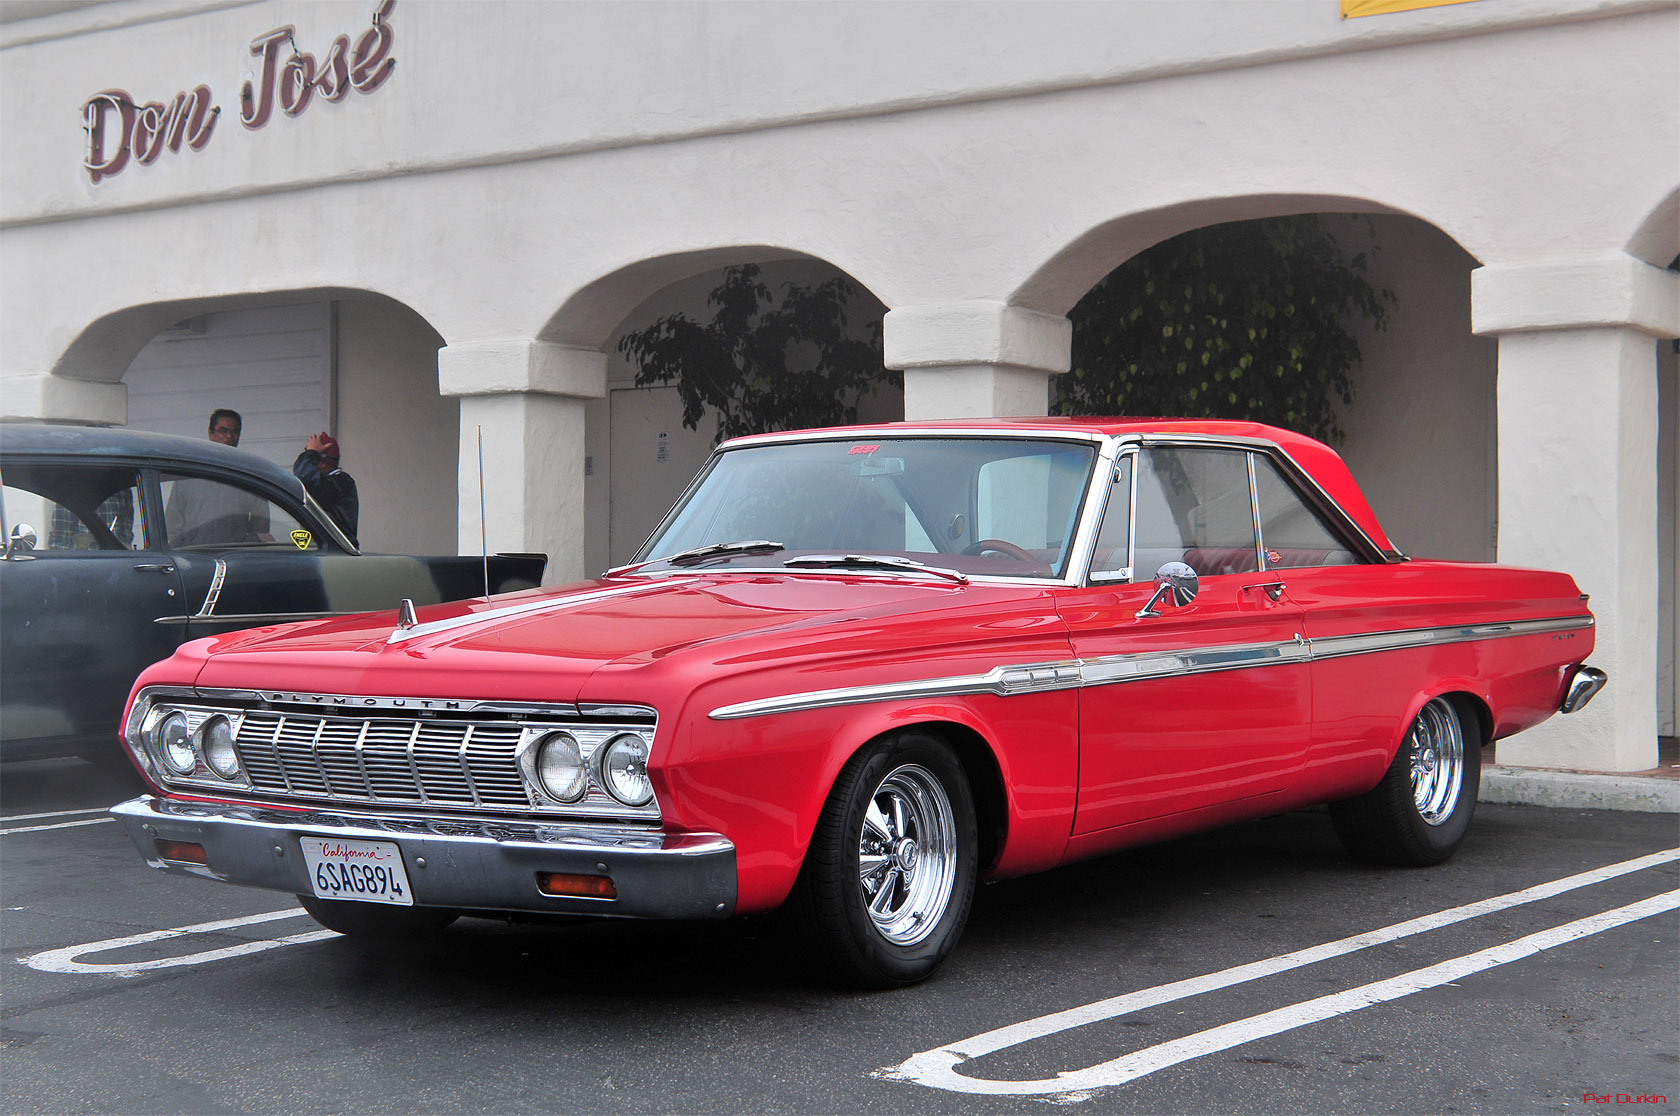 1964 Plymouth Fury   Information and photos   MOMENTcar Plymouth Fury 1964  4 Plymouth Fury 1964  4